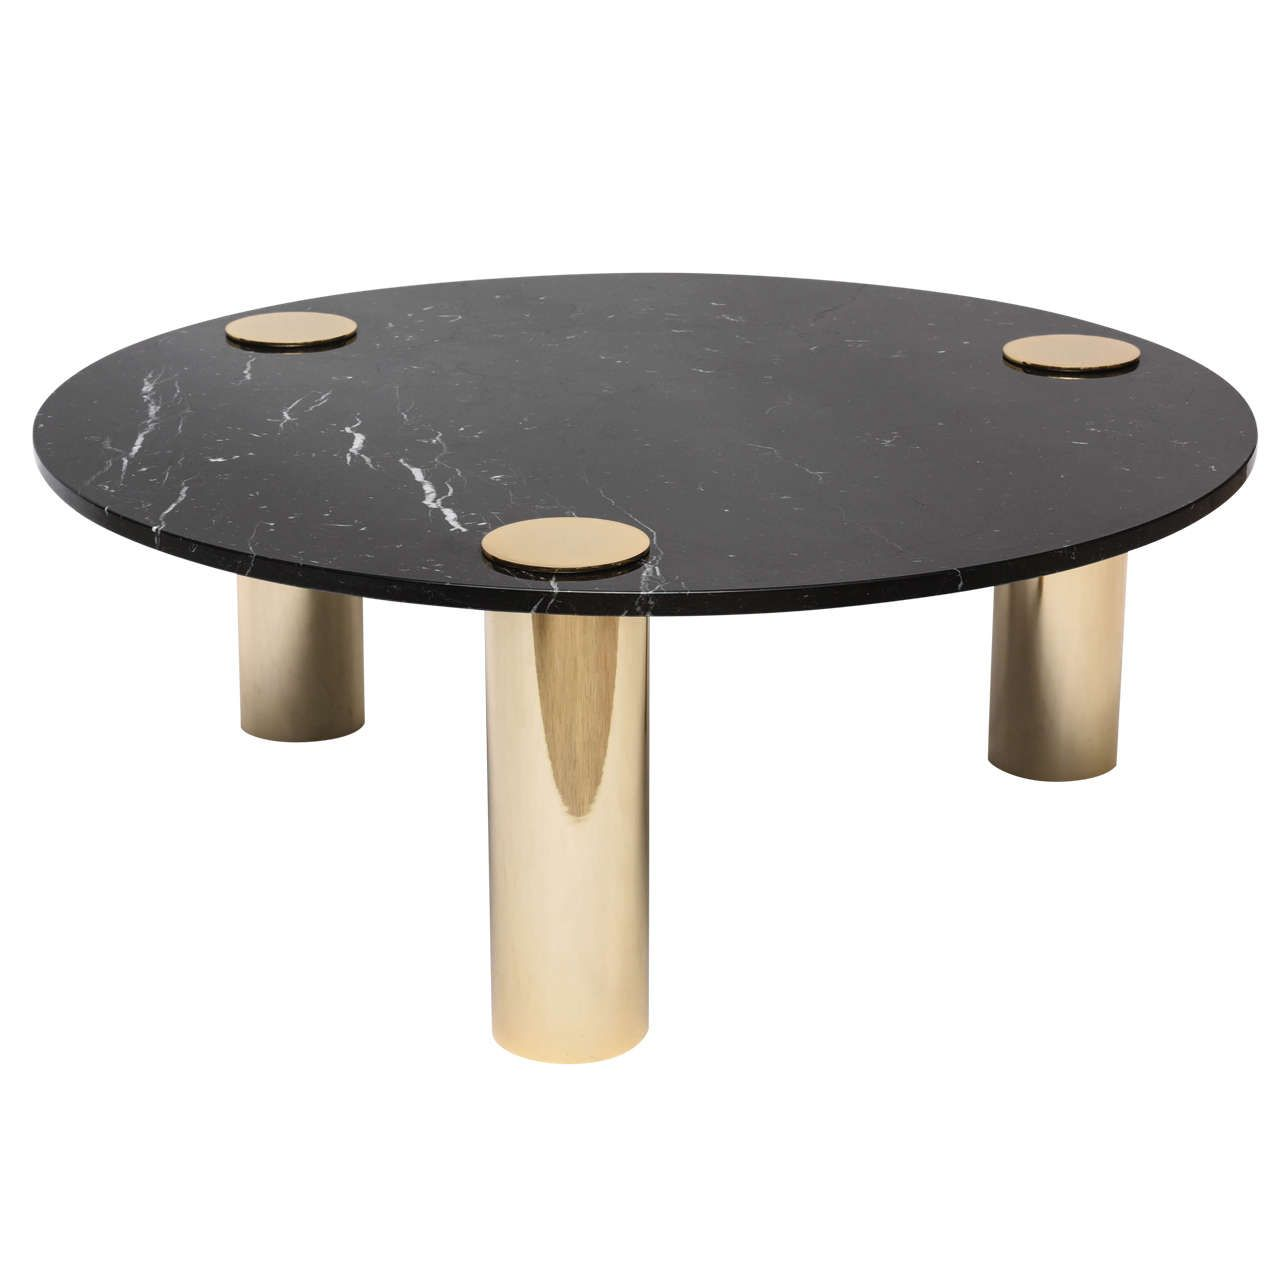 1970s Pace Style Brass And Black Marble Coffee Table From A Unique Collection Of Antique Marble Coffee Table Black Marble Coffee Table Antique Coffee Tables